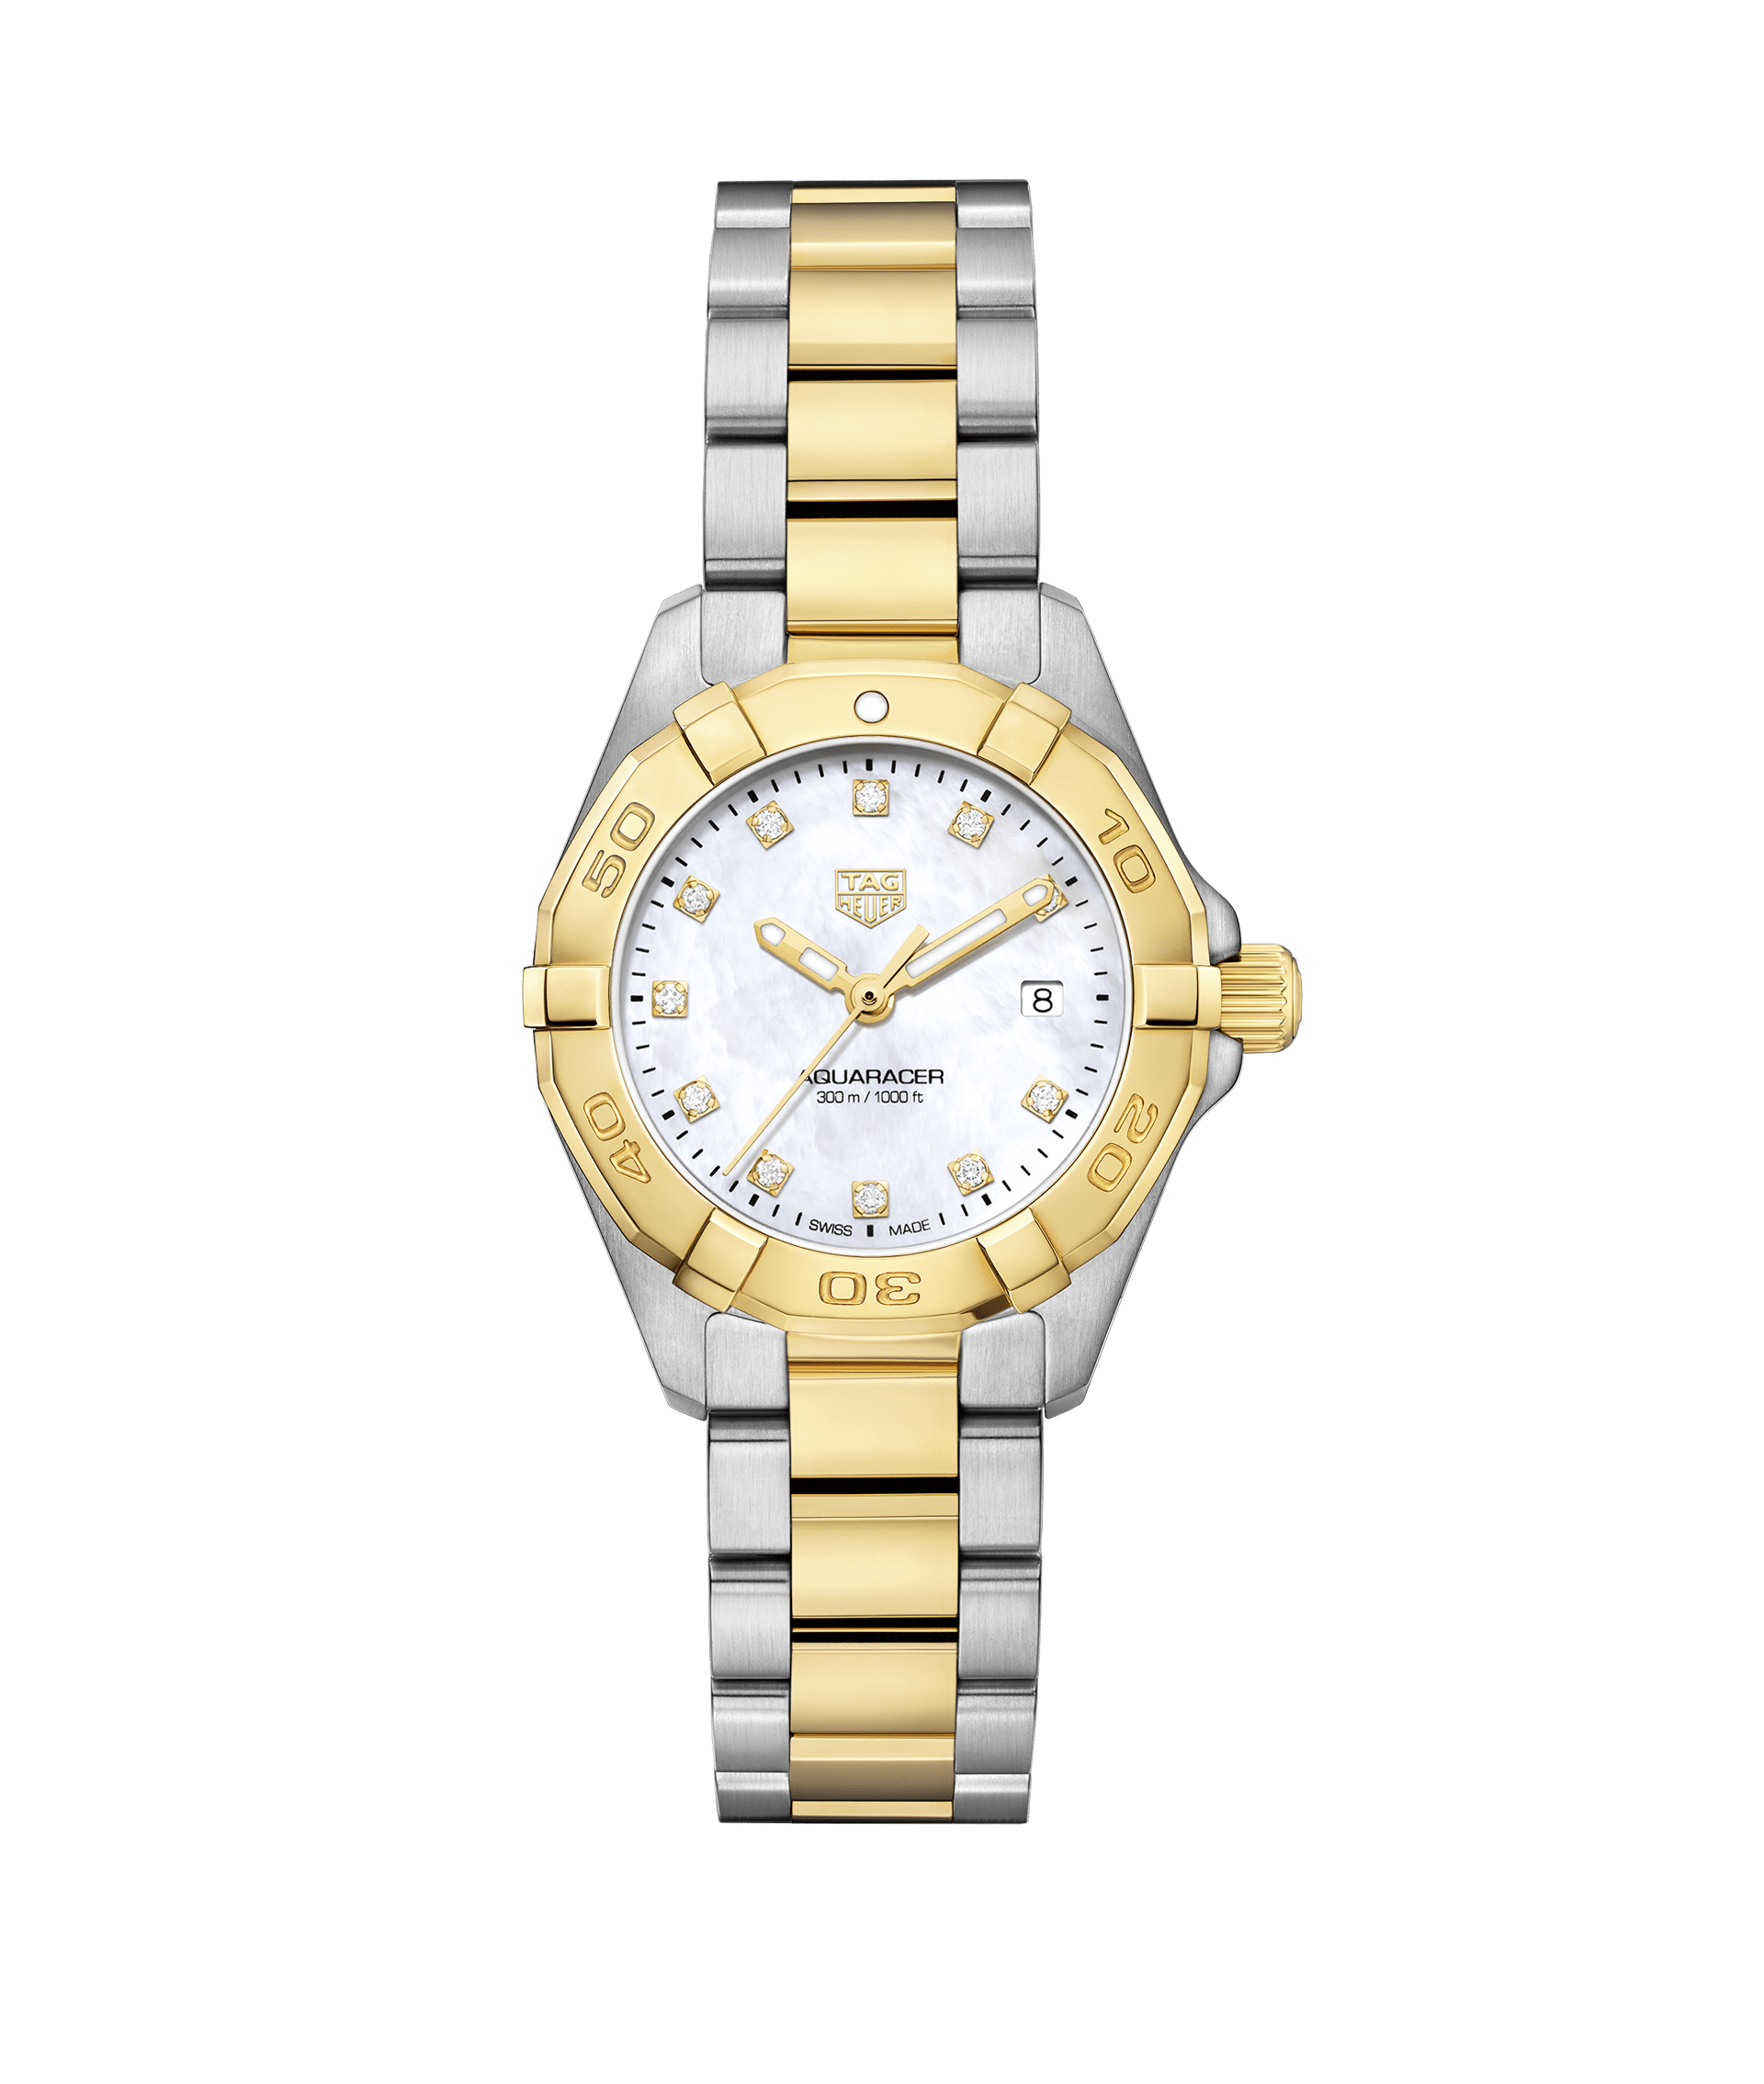 TAG HEUER AQUARACER 300m - 27mm QUARTZ 18K GOLD BEZEL - WBD1422.BB0321